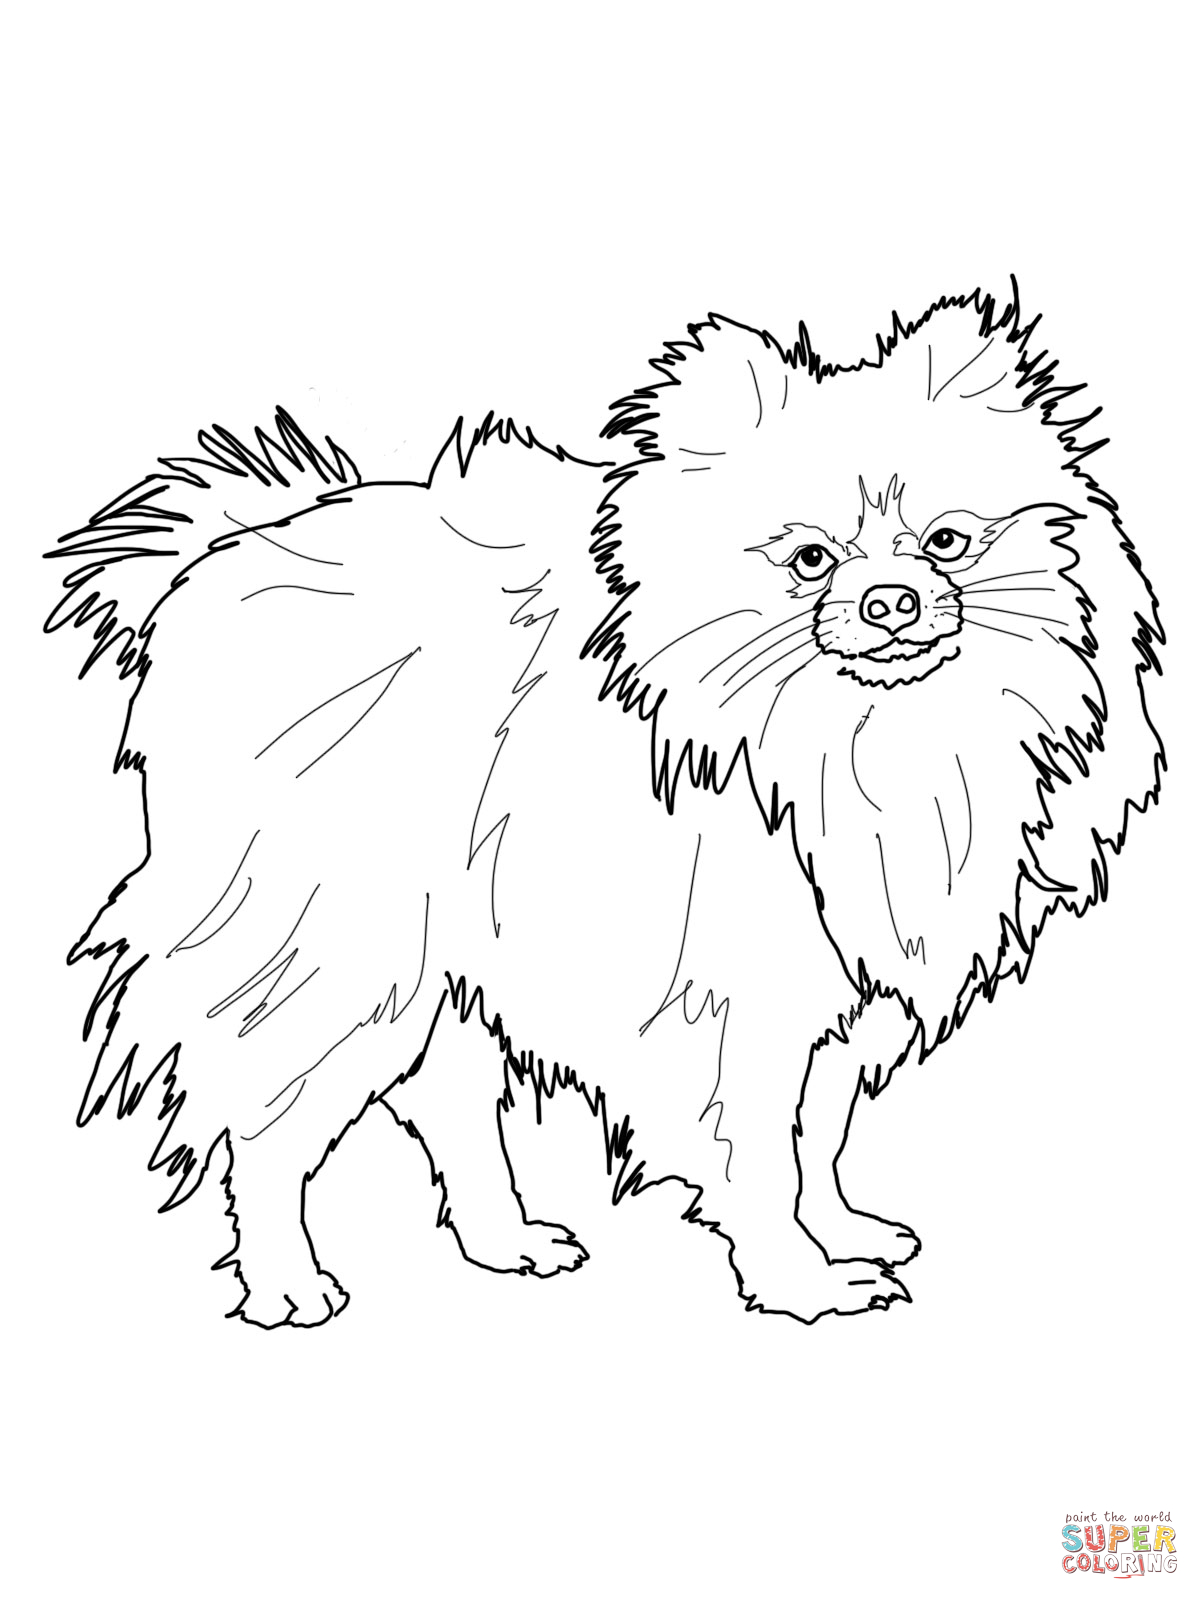 Boo The Pomeranian Coloring Pages Coloring Pages Pomeranian Coloring Pages